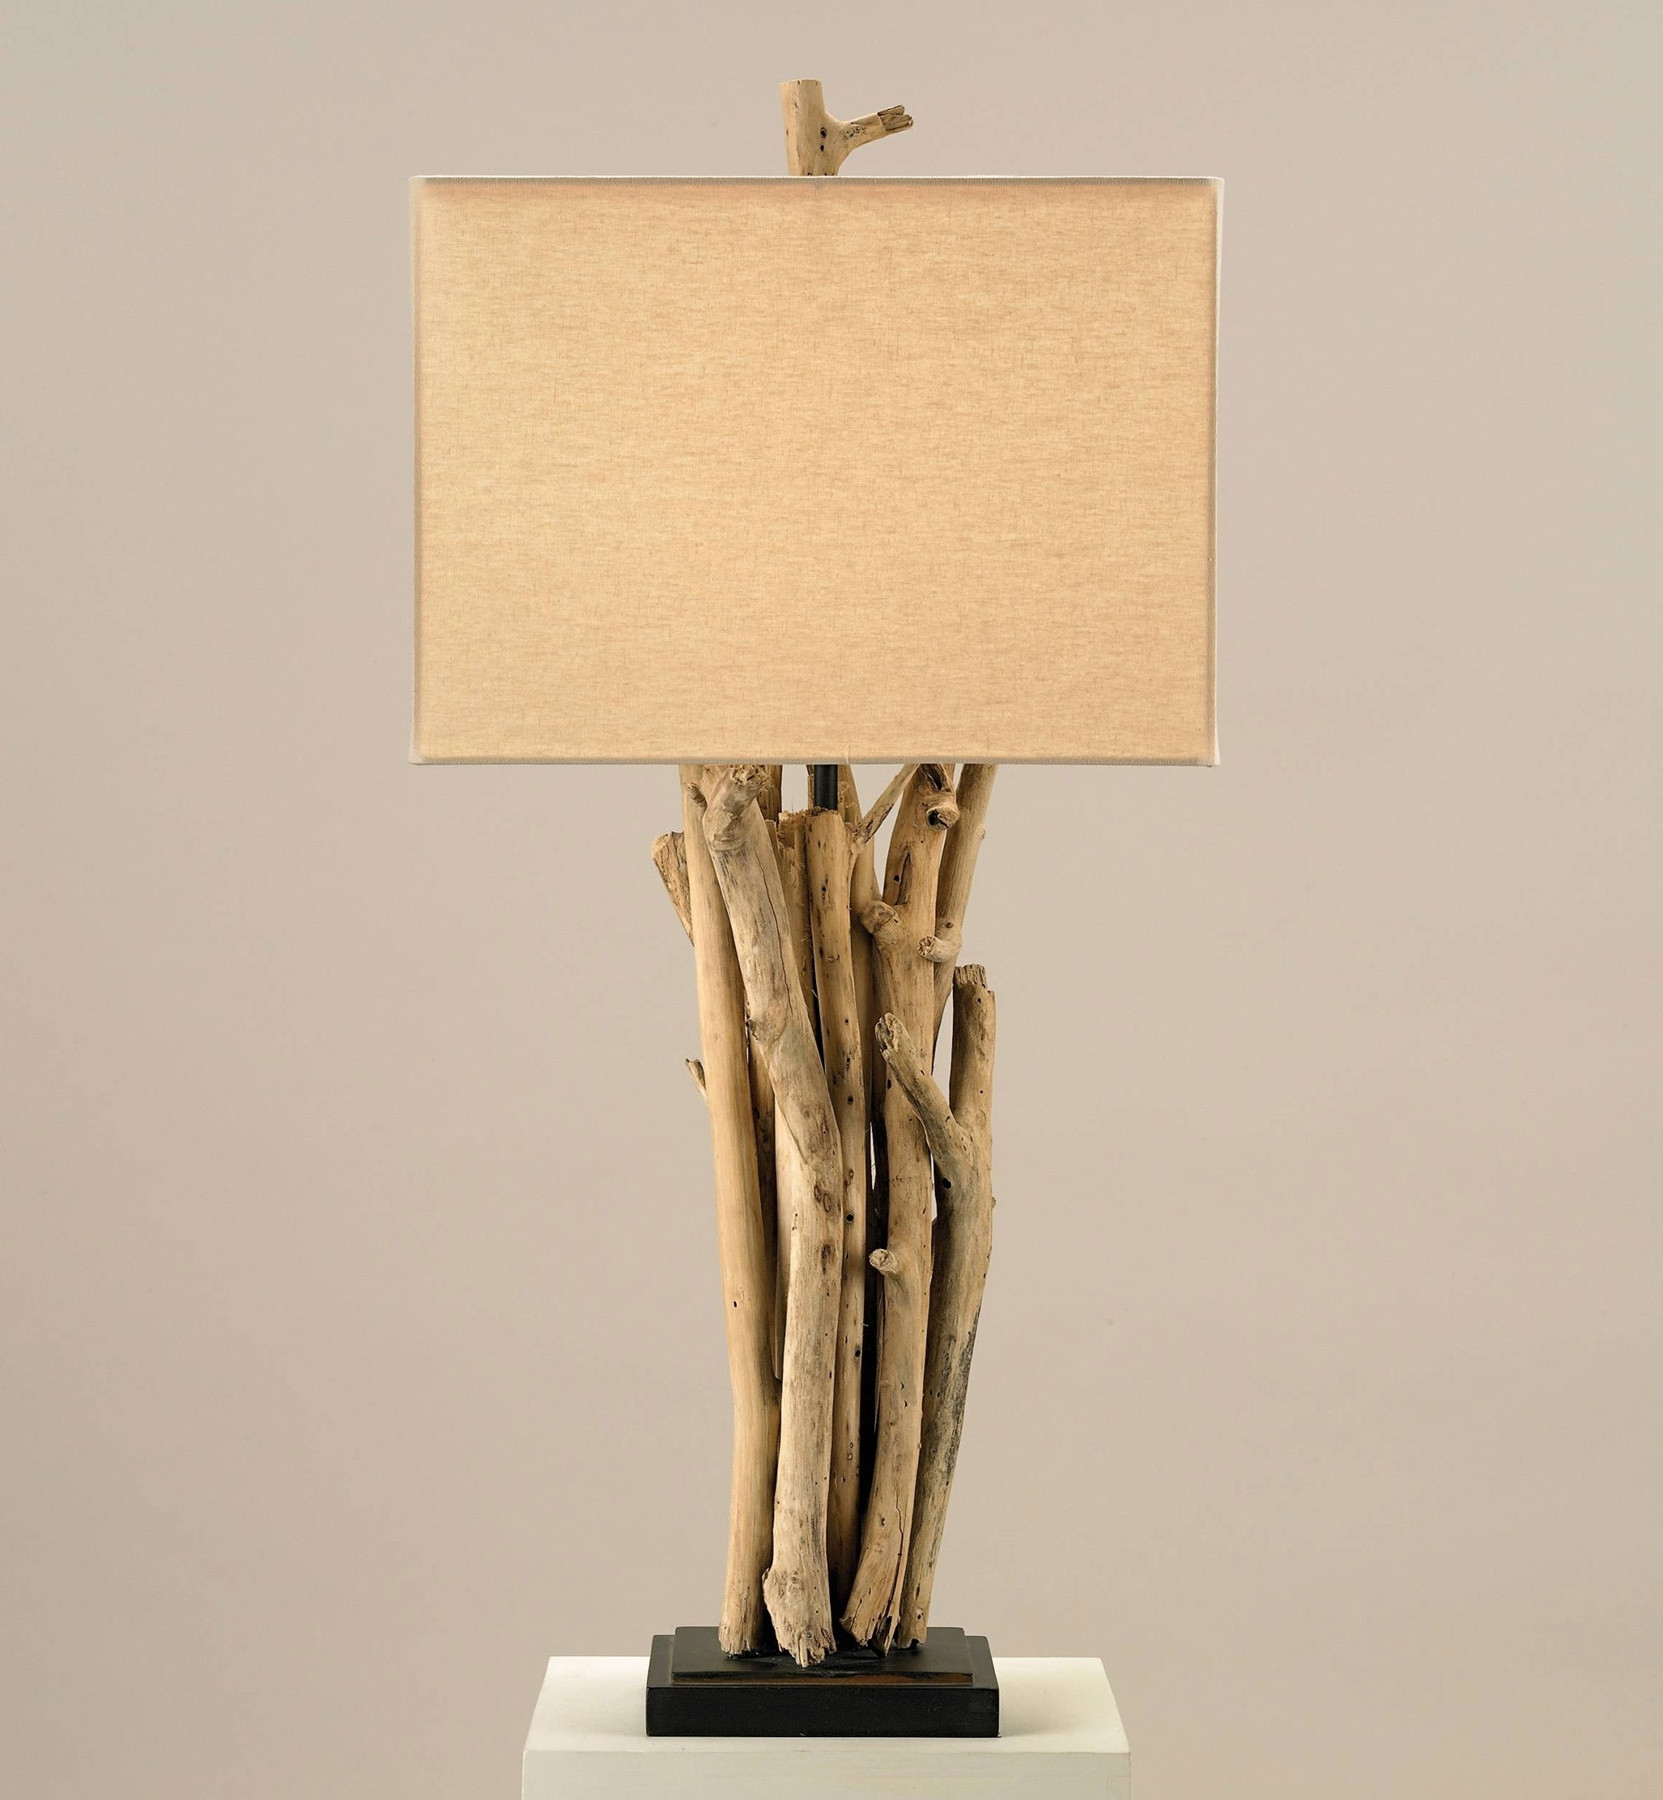 Currey And Company 6344 Driftwood Table Lamp Pertaining To Most Recently Released Wood Table Lamps For Living Room (View 4 of 20)